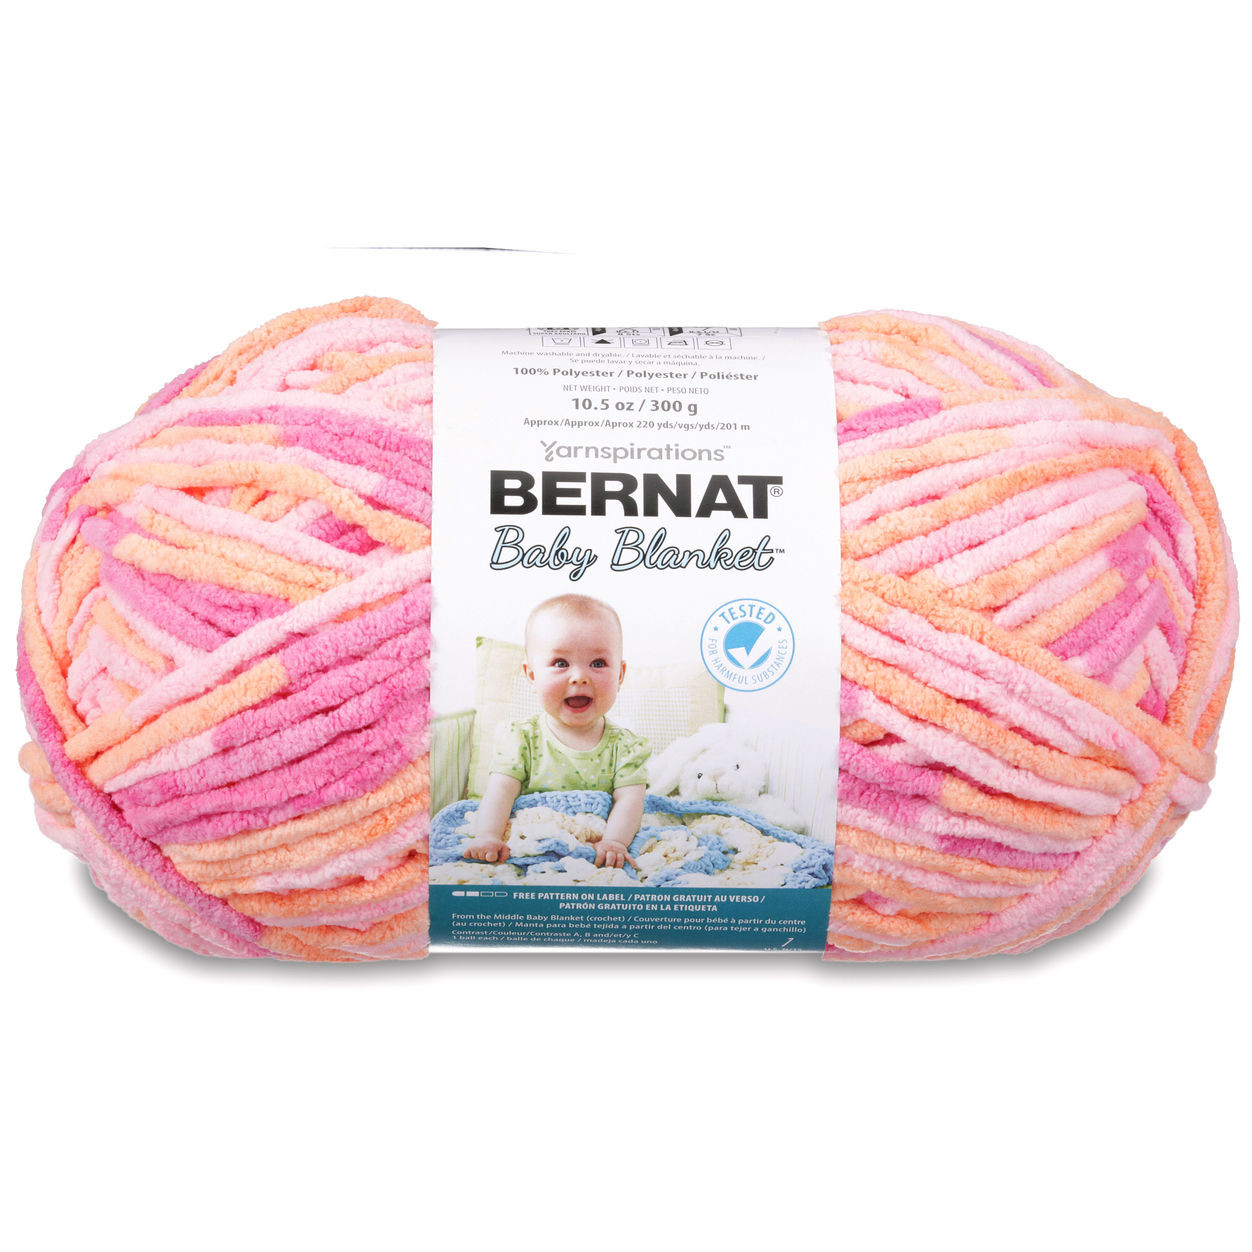 Bernat Baby Blanket Yarn Big Ball Elegant Bernat Baby Blanket Big Ball Yarn Little Royales Of Awesome 48 Pictures Bernat Baby Blanket Yarn Big Ball